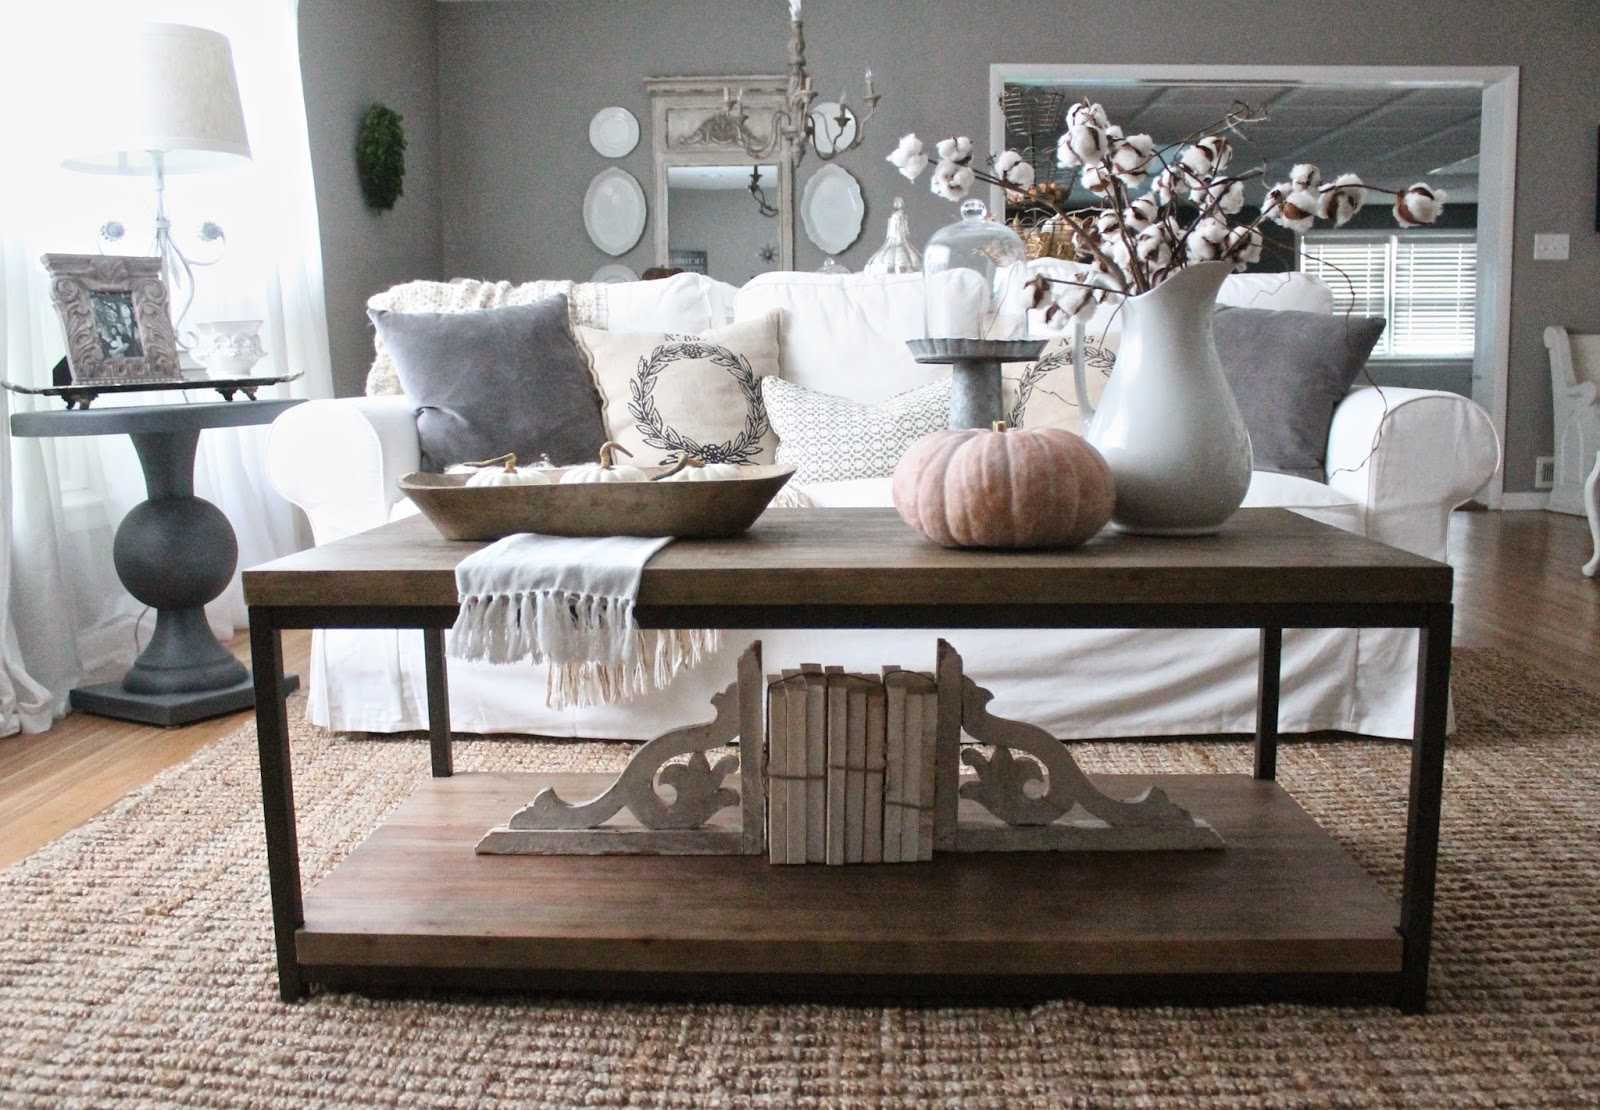 12th And White: 3 Ways To Style A Coffee Table